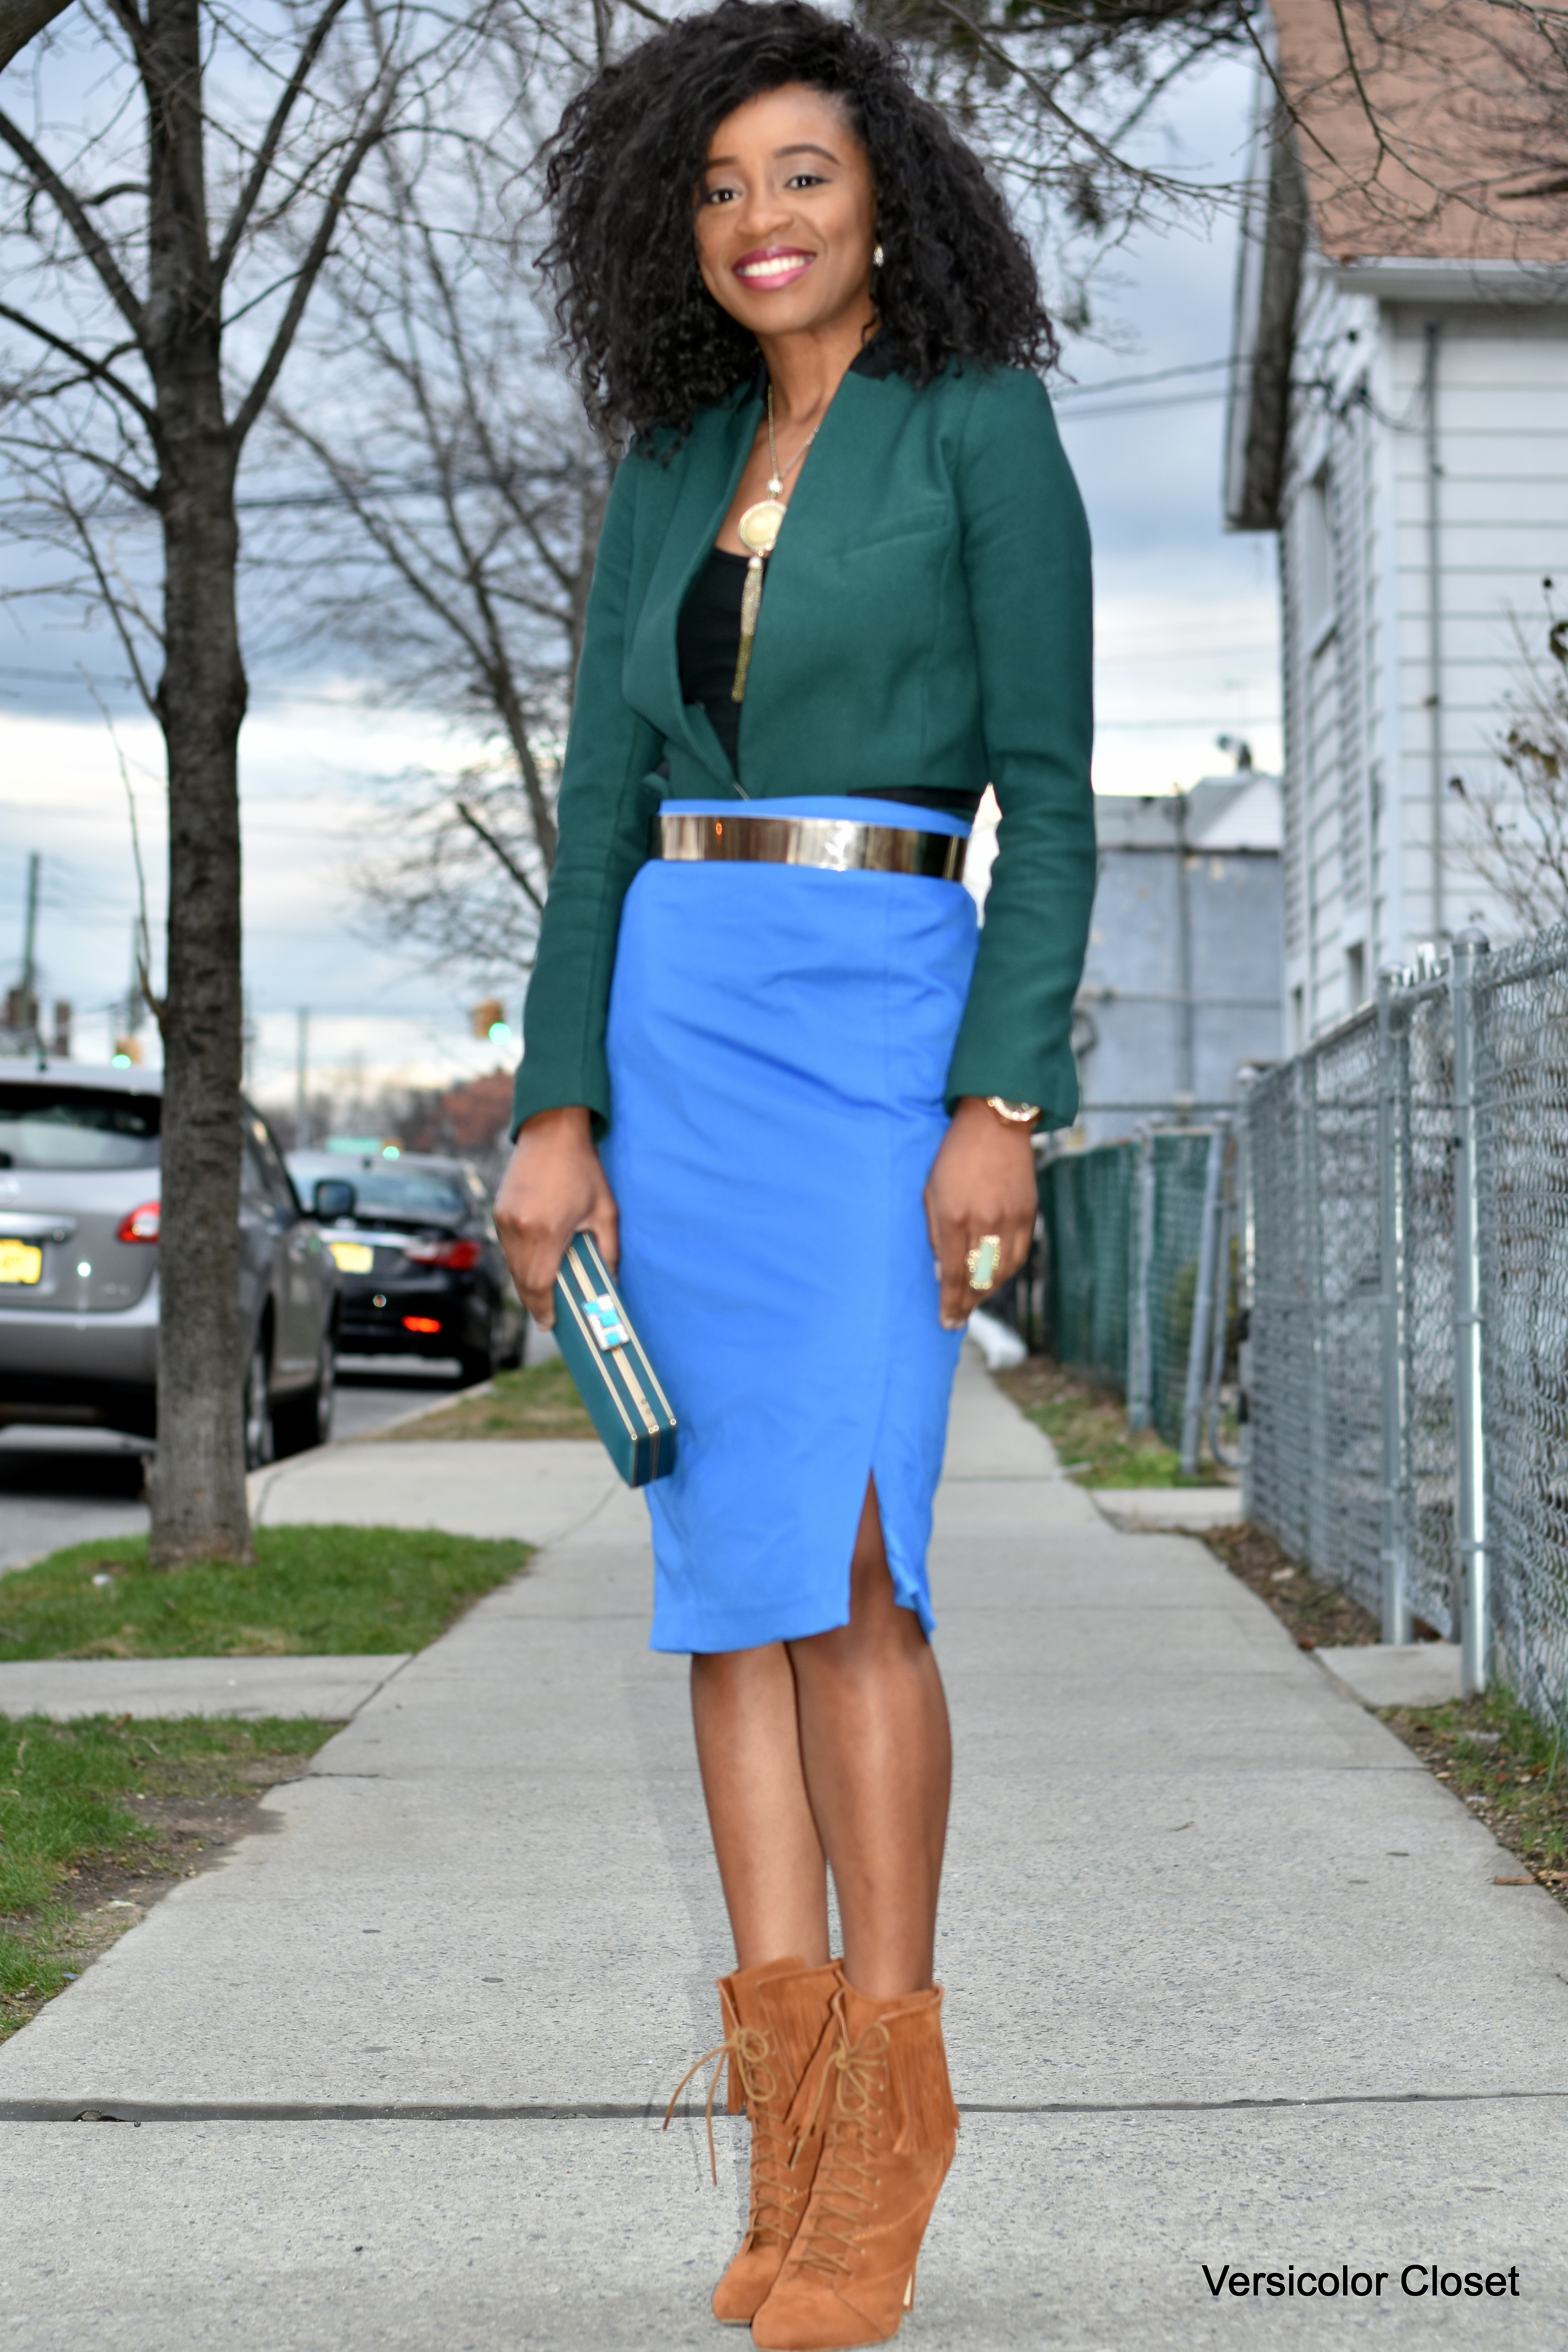 pencil skirt fitted blazer versicolor closet